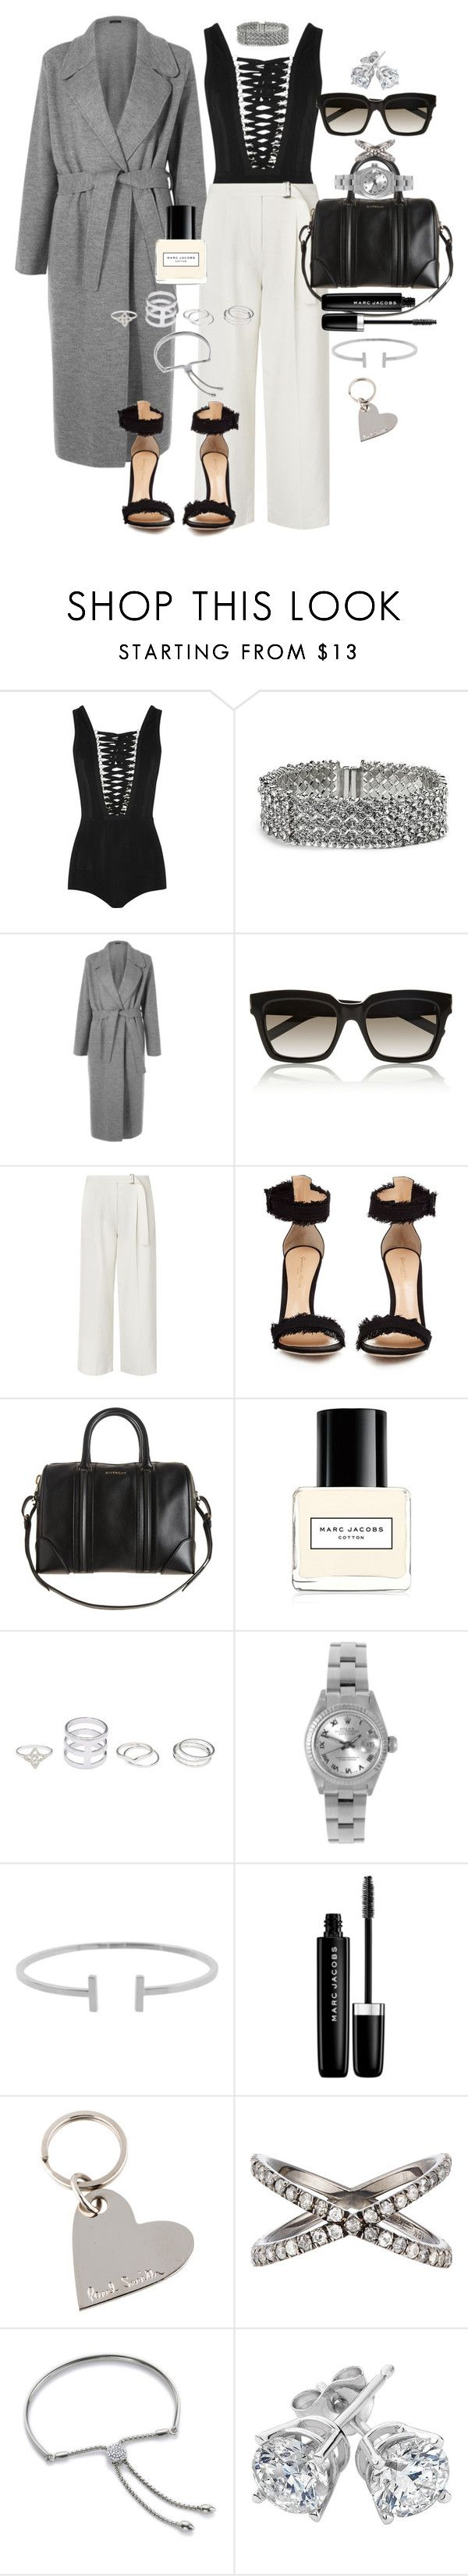 """Glam"" by marissa-91 ❤ liked on Polyvore featuring Givenchy, GUESS, The Row, Yves Saint Laurent, L.K.Bennett, Gianvito Rossi, Marc Jacobs, Rolex, Humble Chic and Paul Smith"